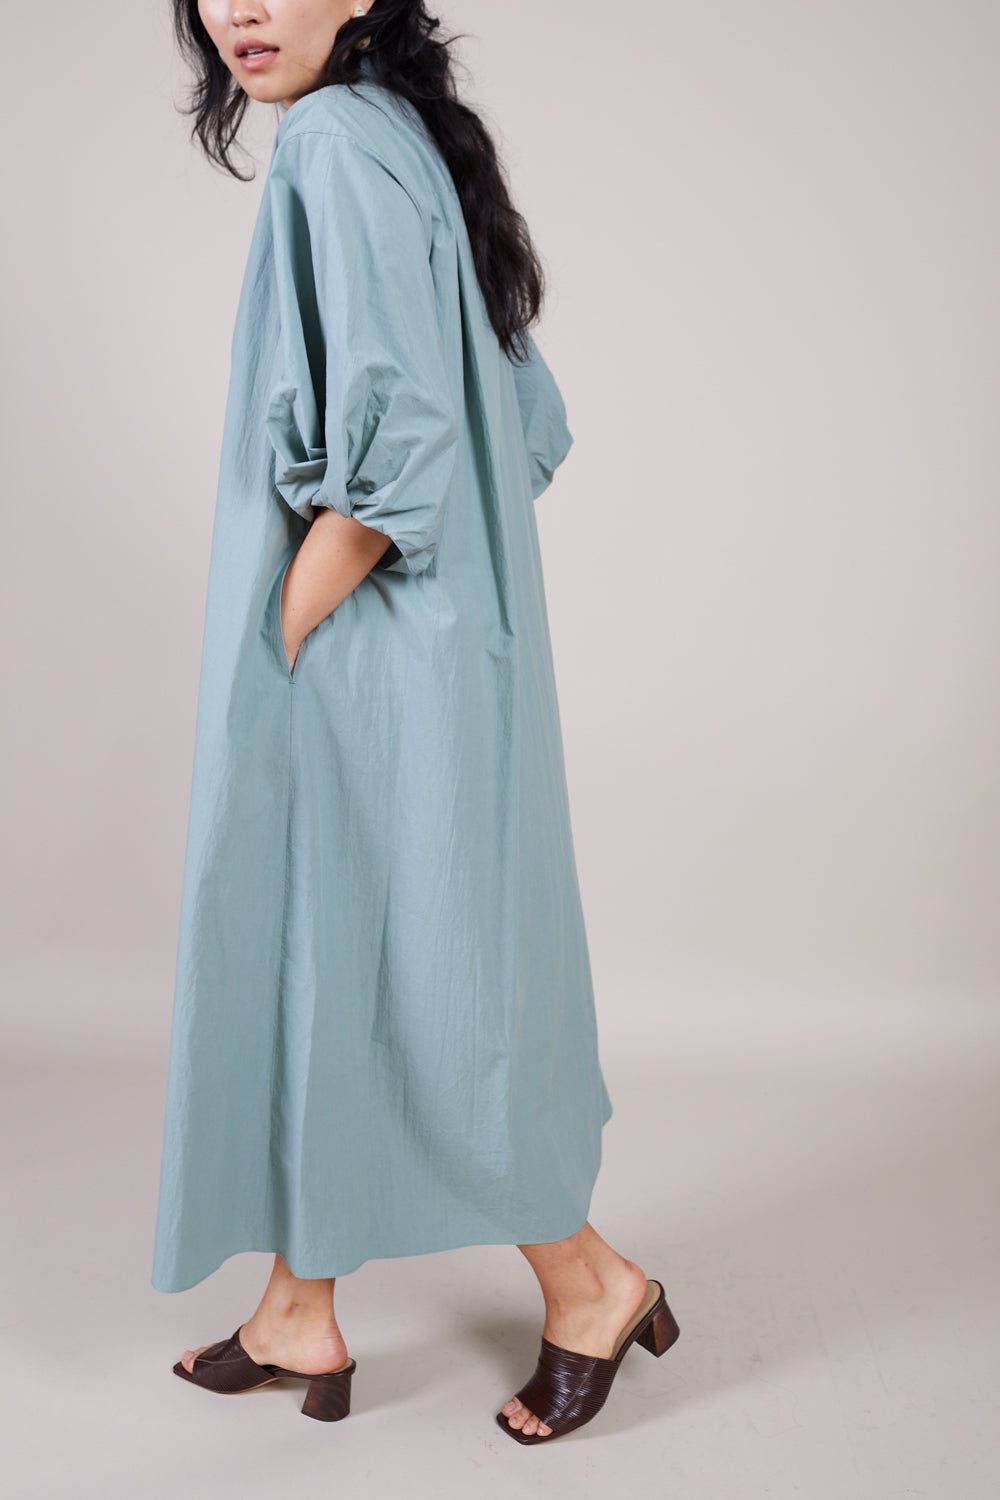 Sayaka Davis Twisted Sleeve Dress in Sage - Vert & Vogue